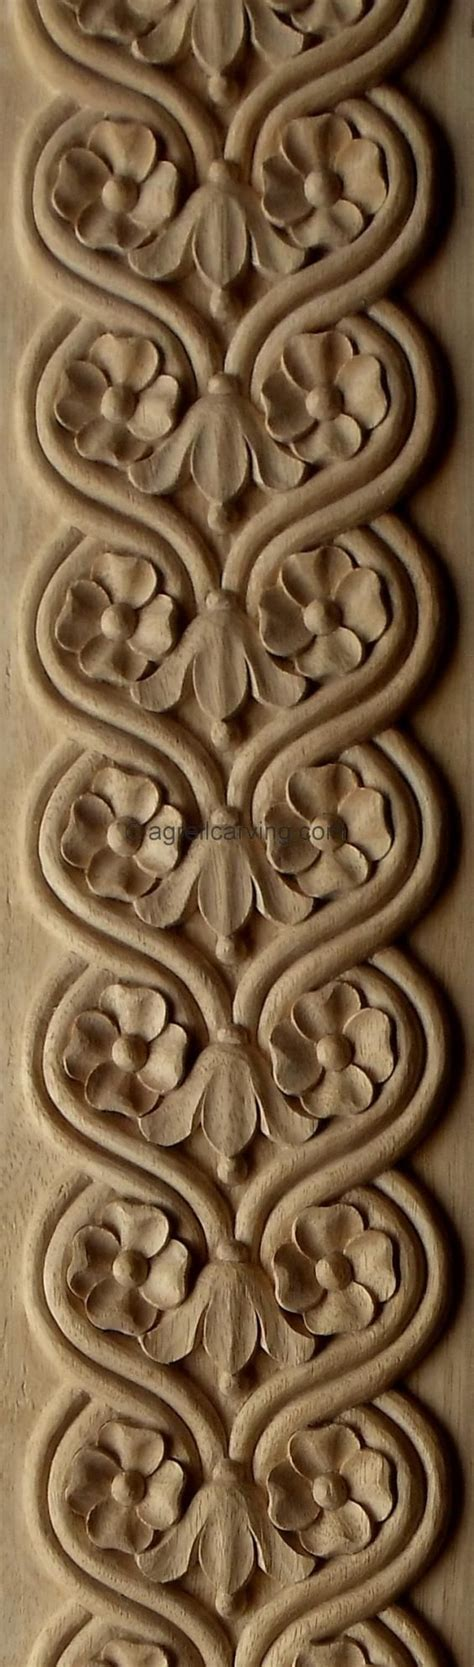 interwoven guilloche ahsap oyma pinterest cnc wood carving patterns  carved wood